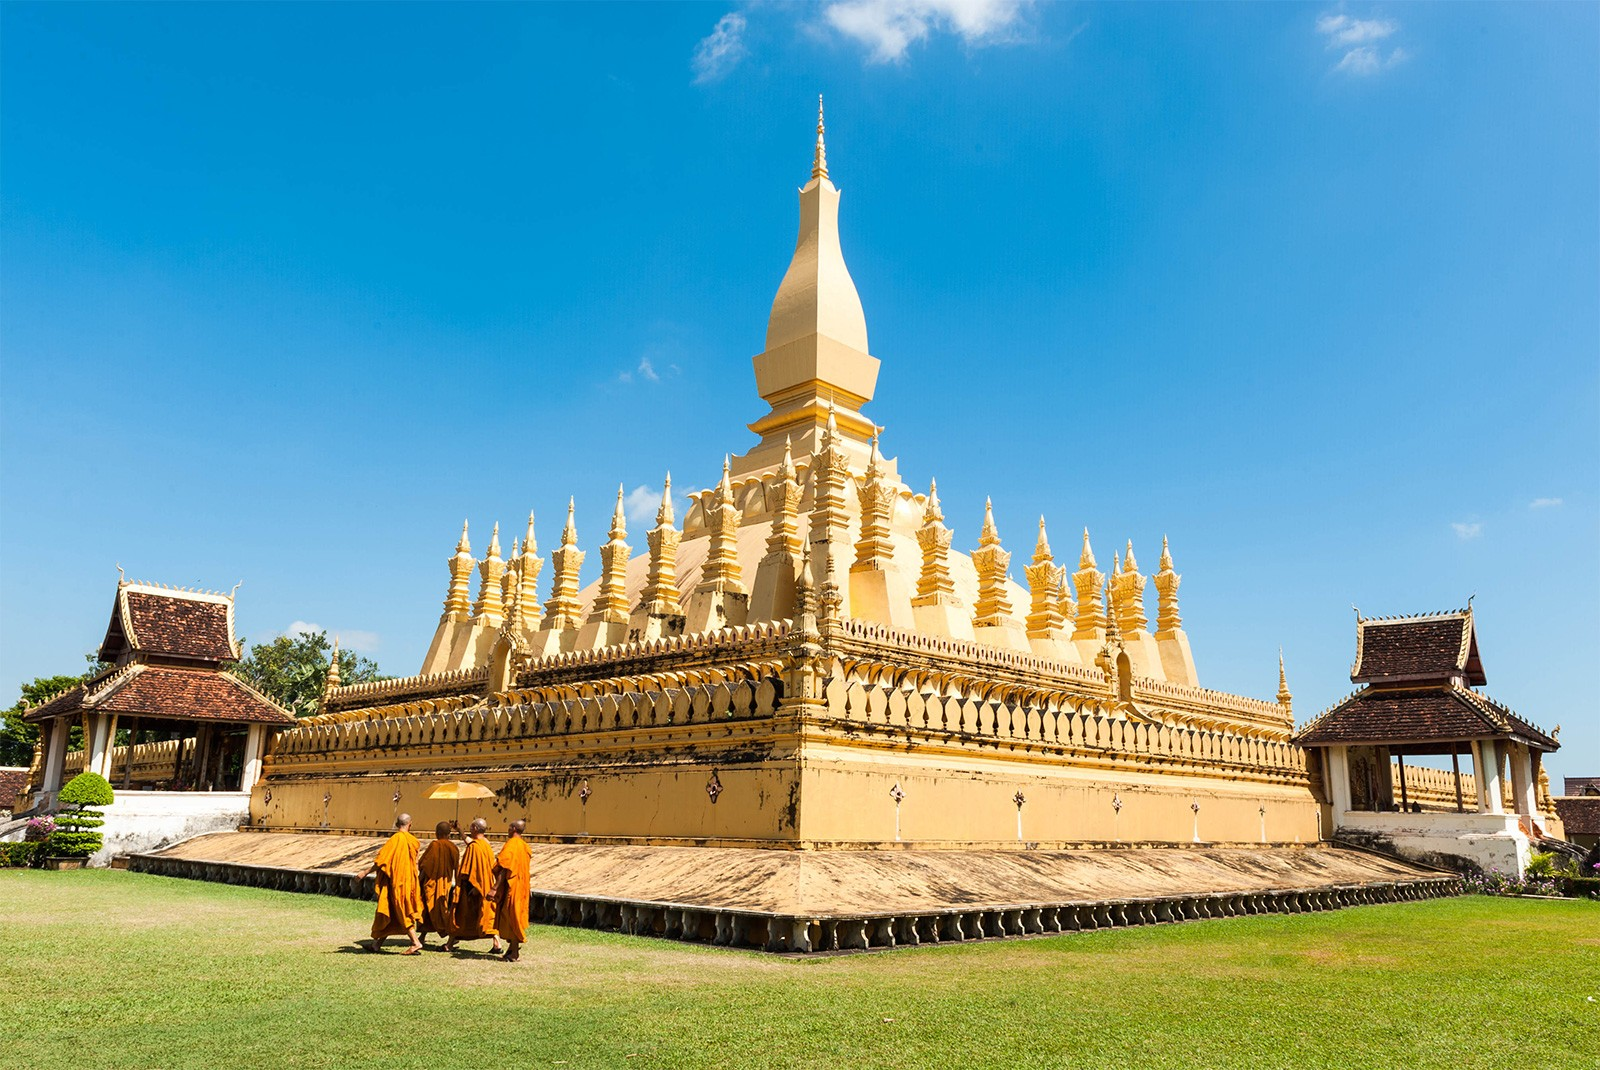 temple-Pha-That-Luang-Laos.jpg